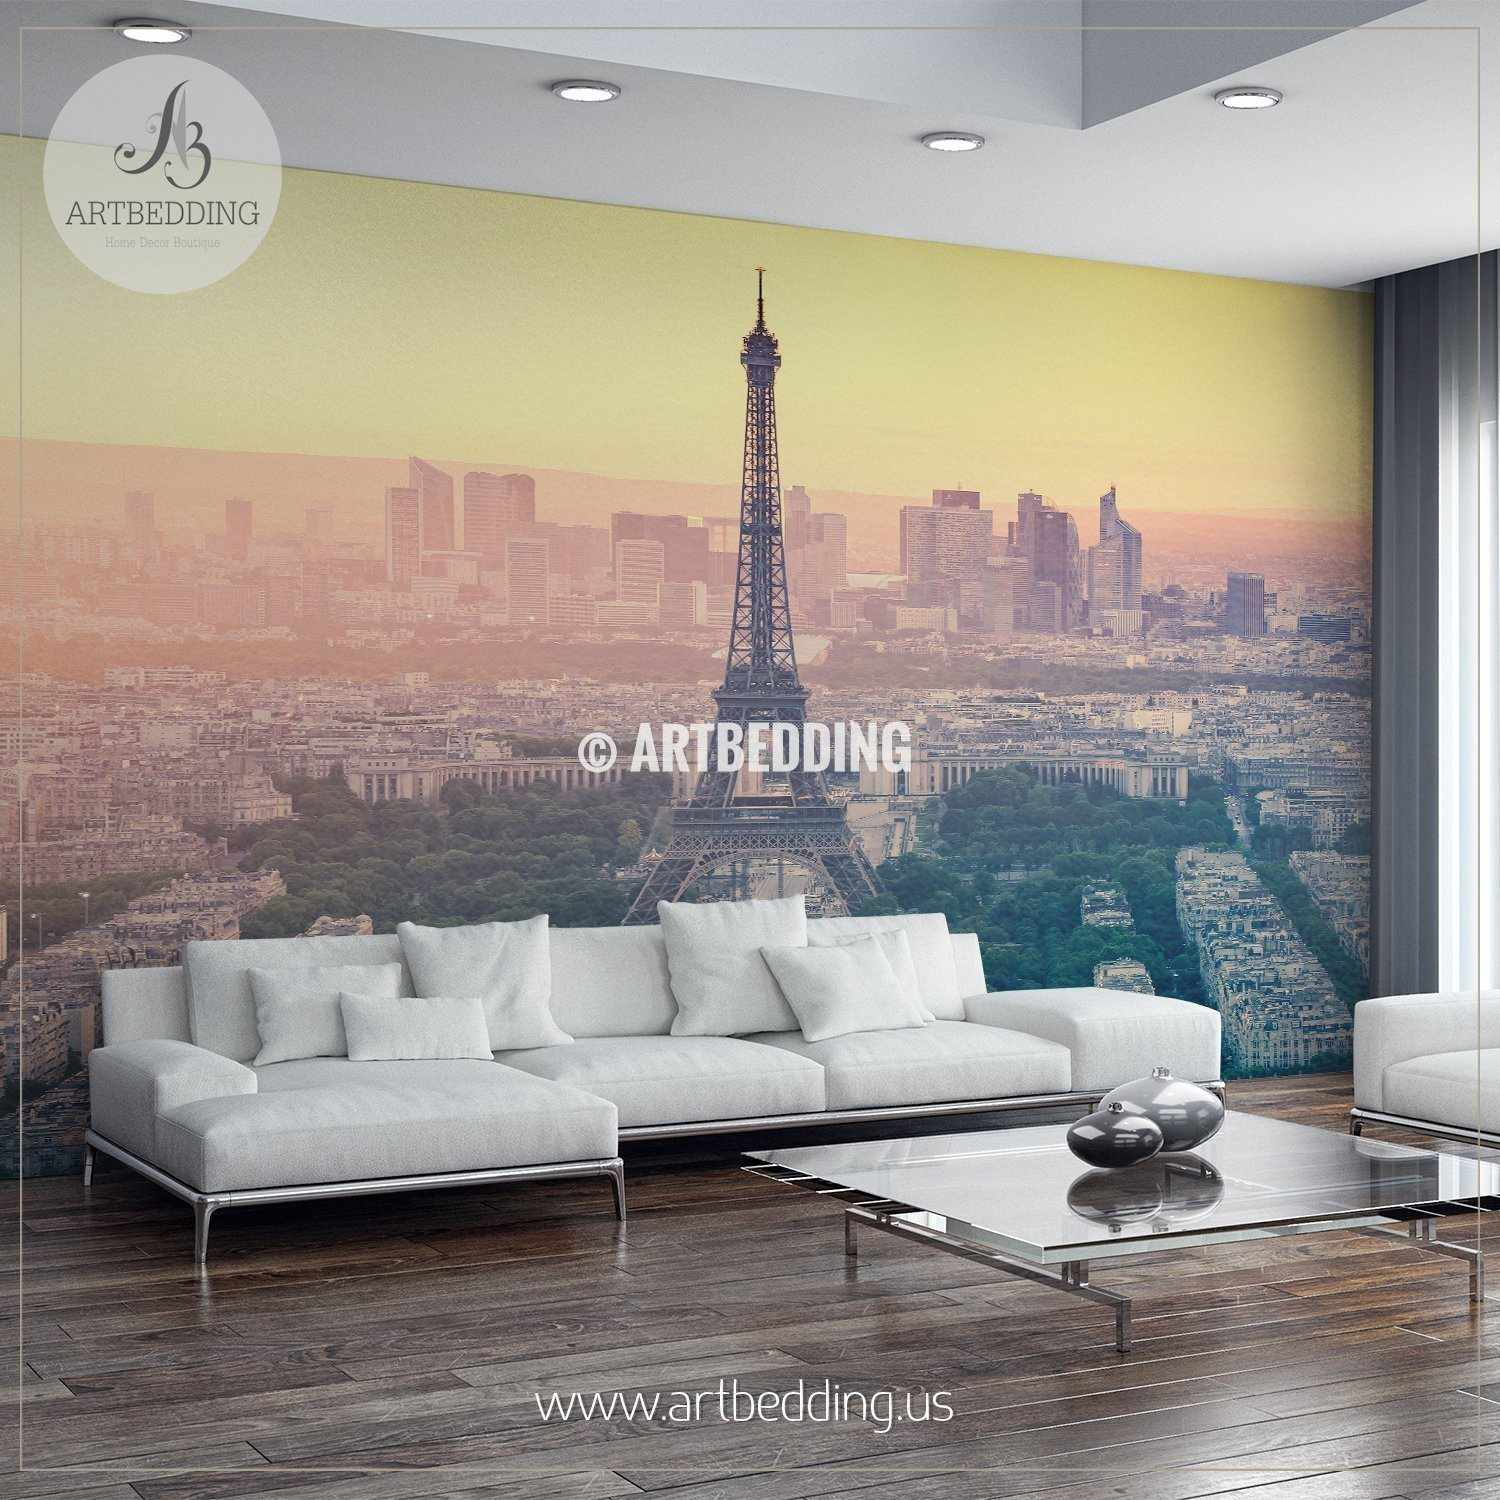 ... Paris City Skyline At Sunset With The Eiffel Tower Wall Mural, Photo  Mural, Wall ...